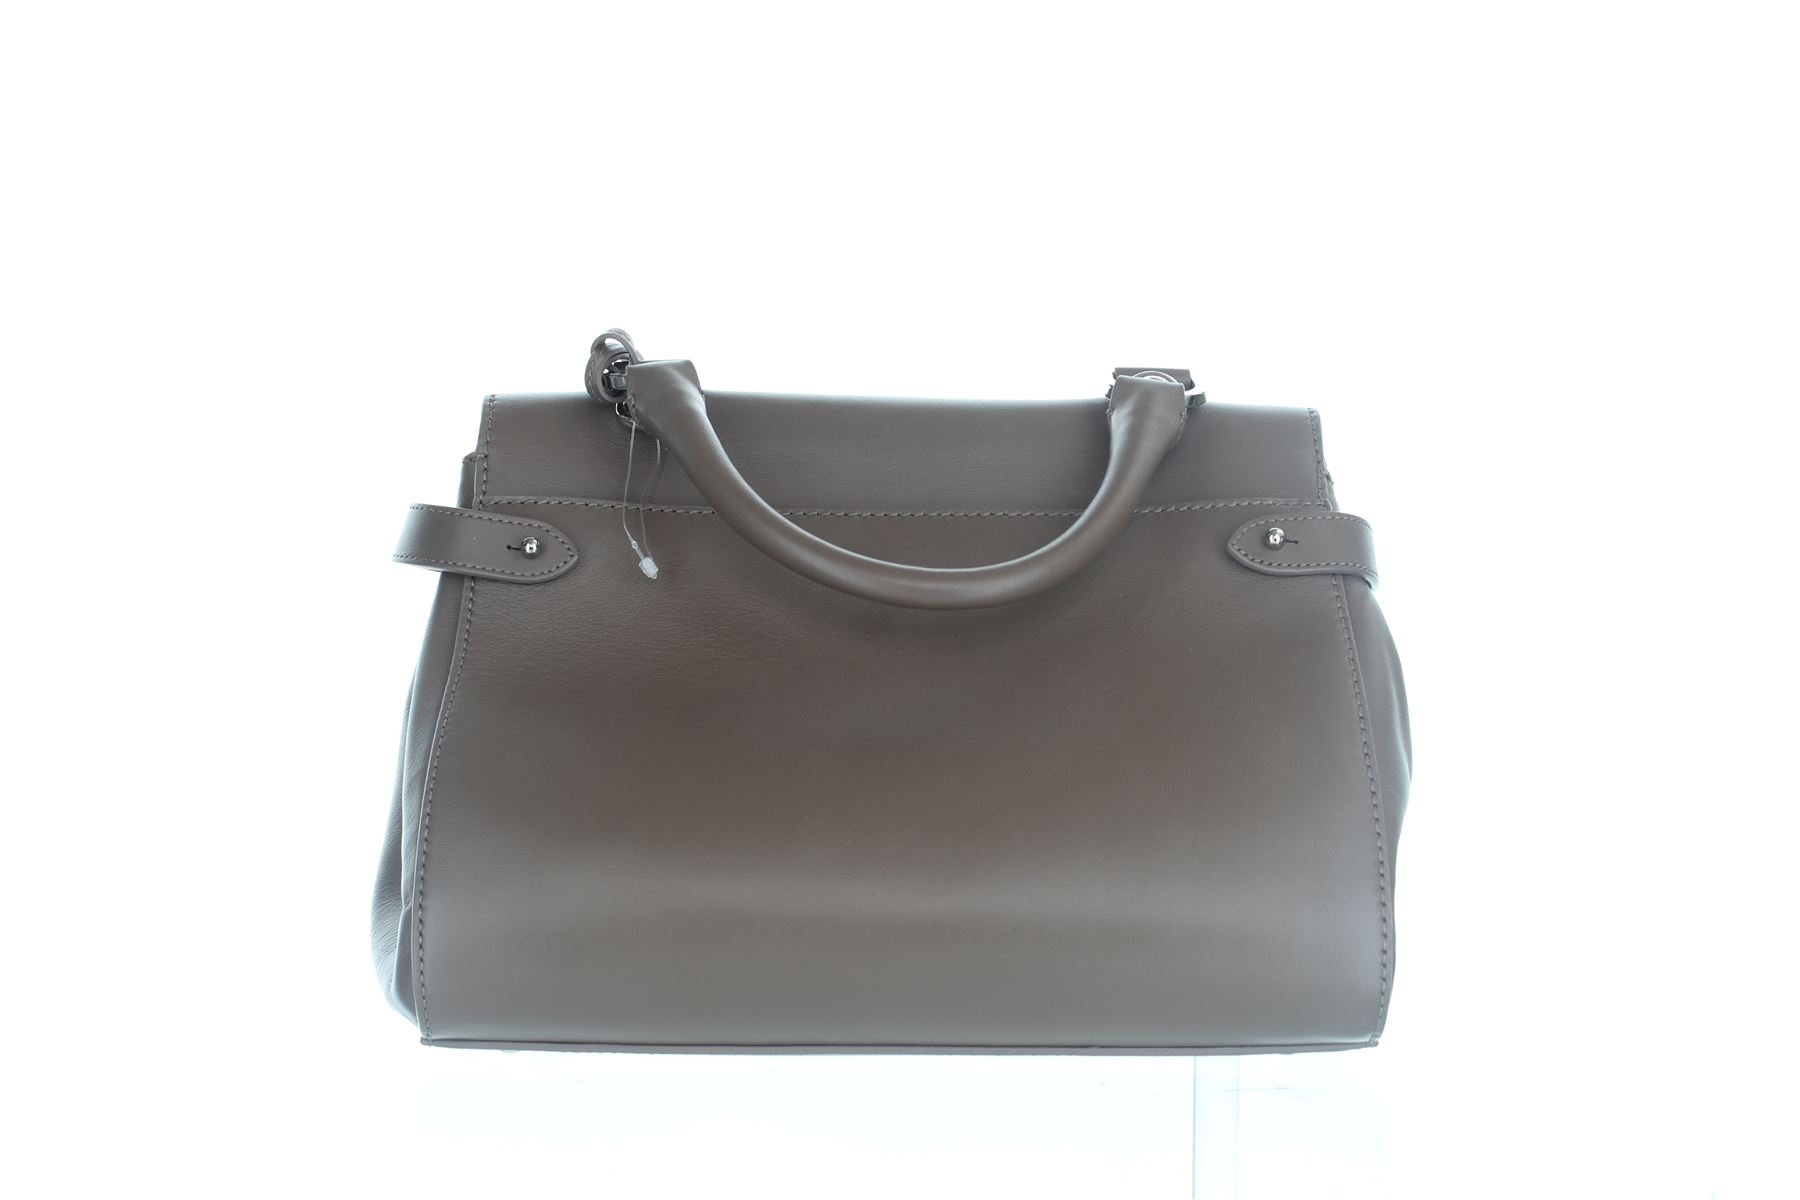 8b35301e0a ... official mulberry primrose taupe leather handle bag 8 x 6.5 x 11 b8733  30c97